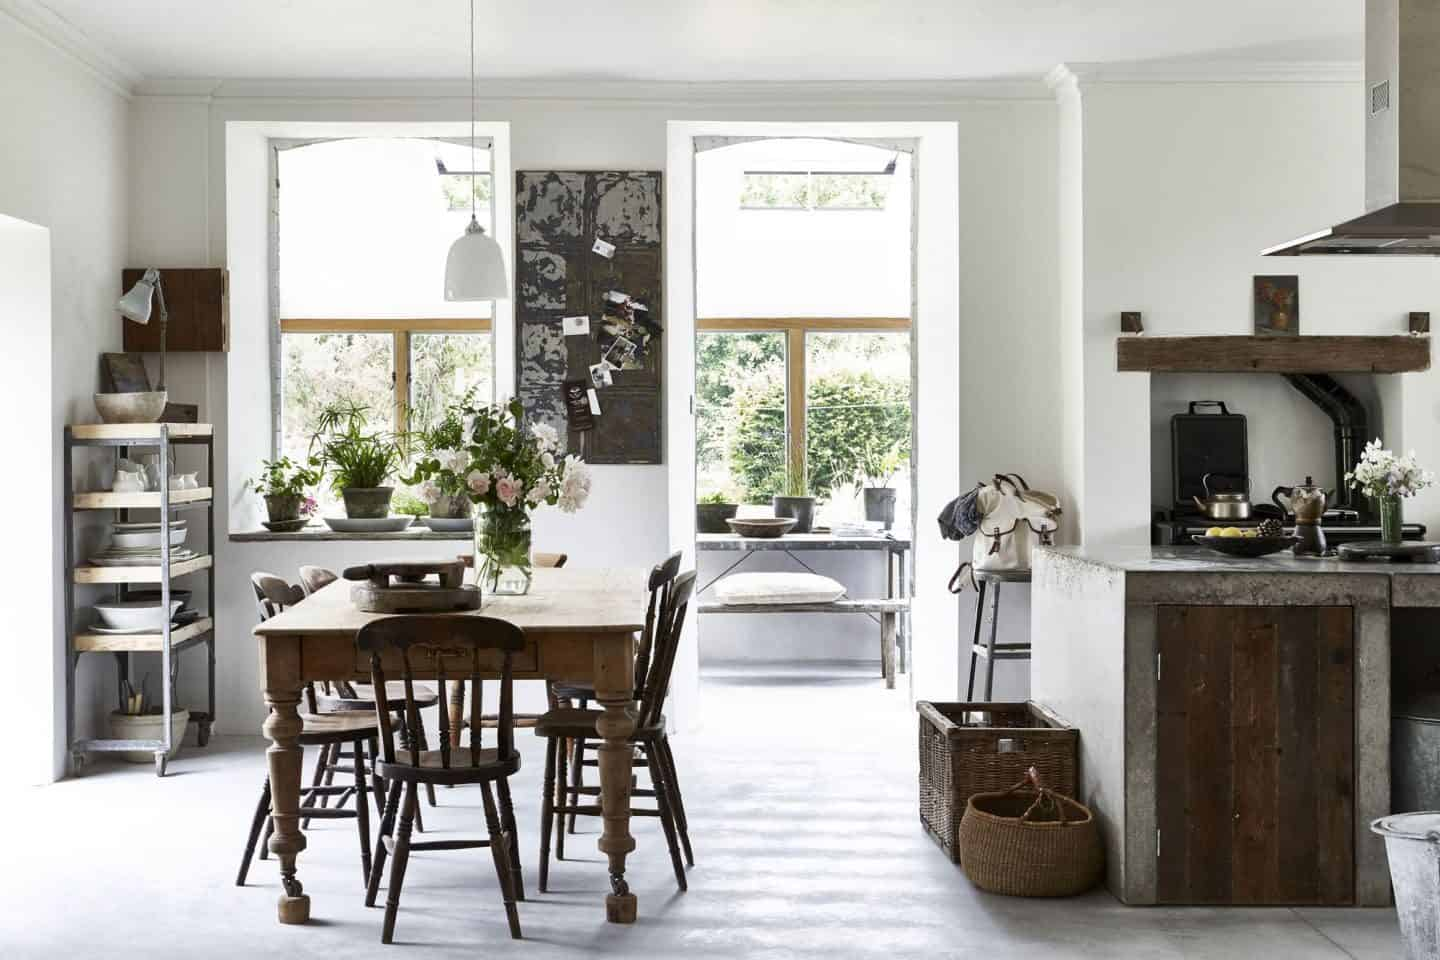 Natural Living Style by Selina Lake. An industrial-style kitchen featuring metal, concrete and rustic worn wood.